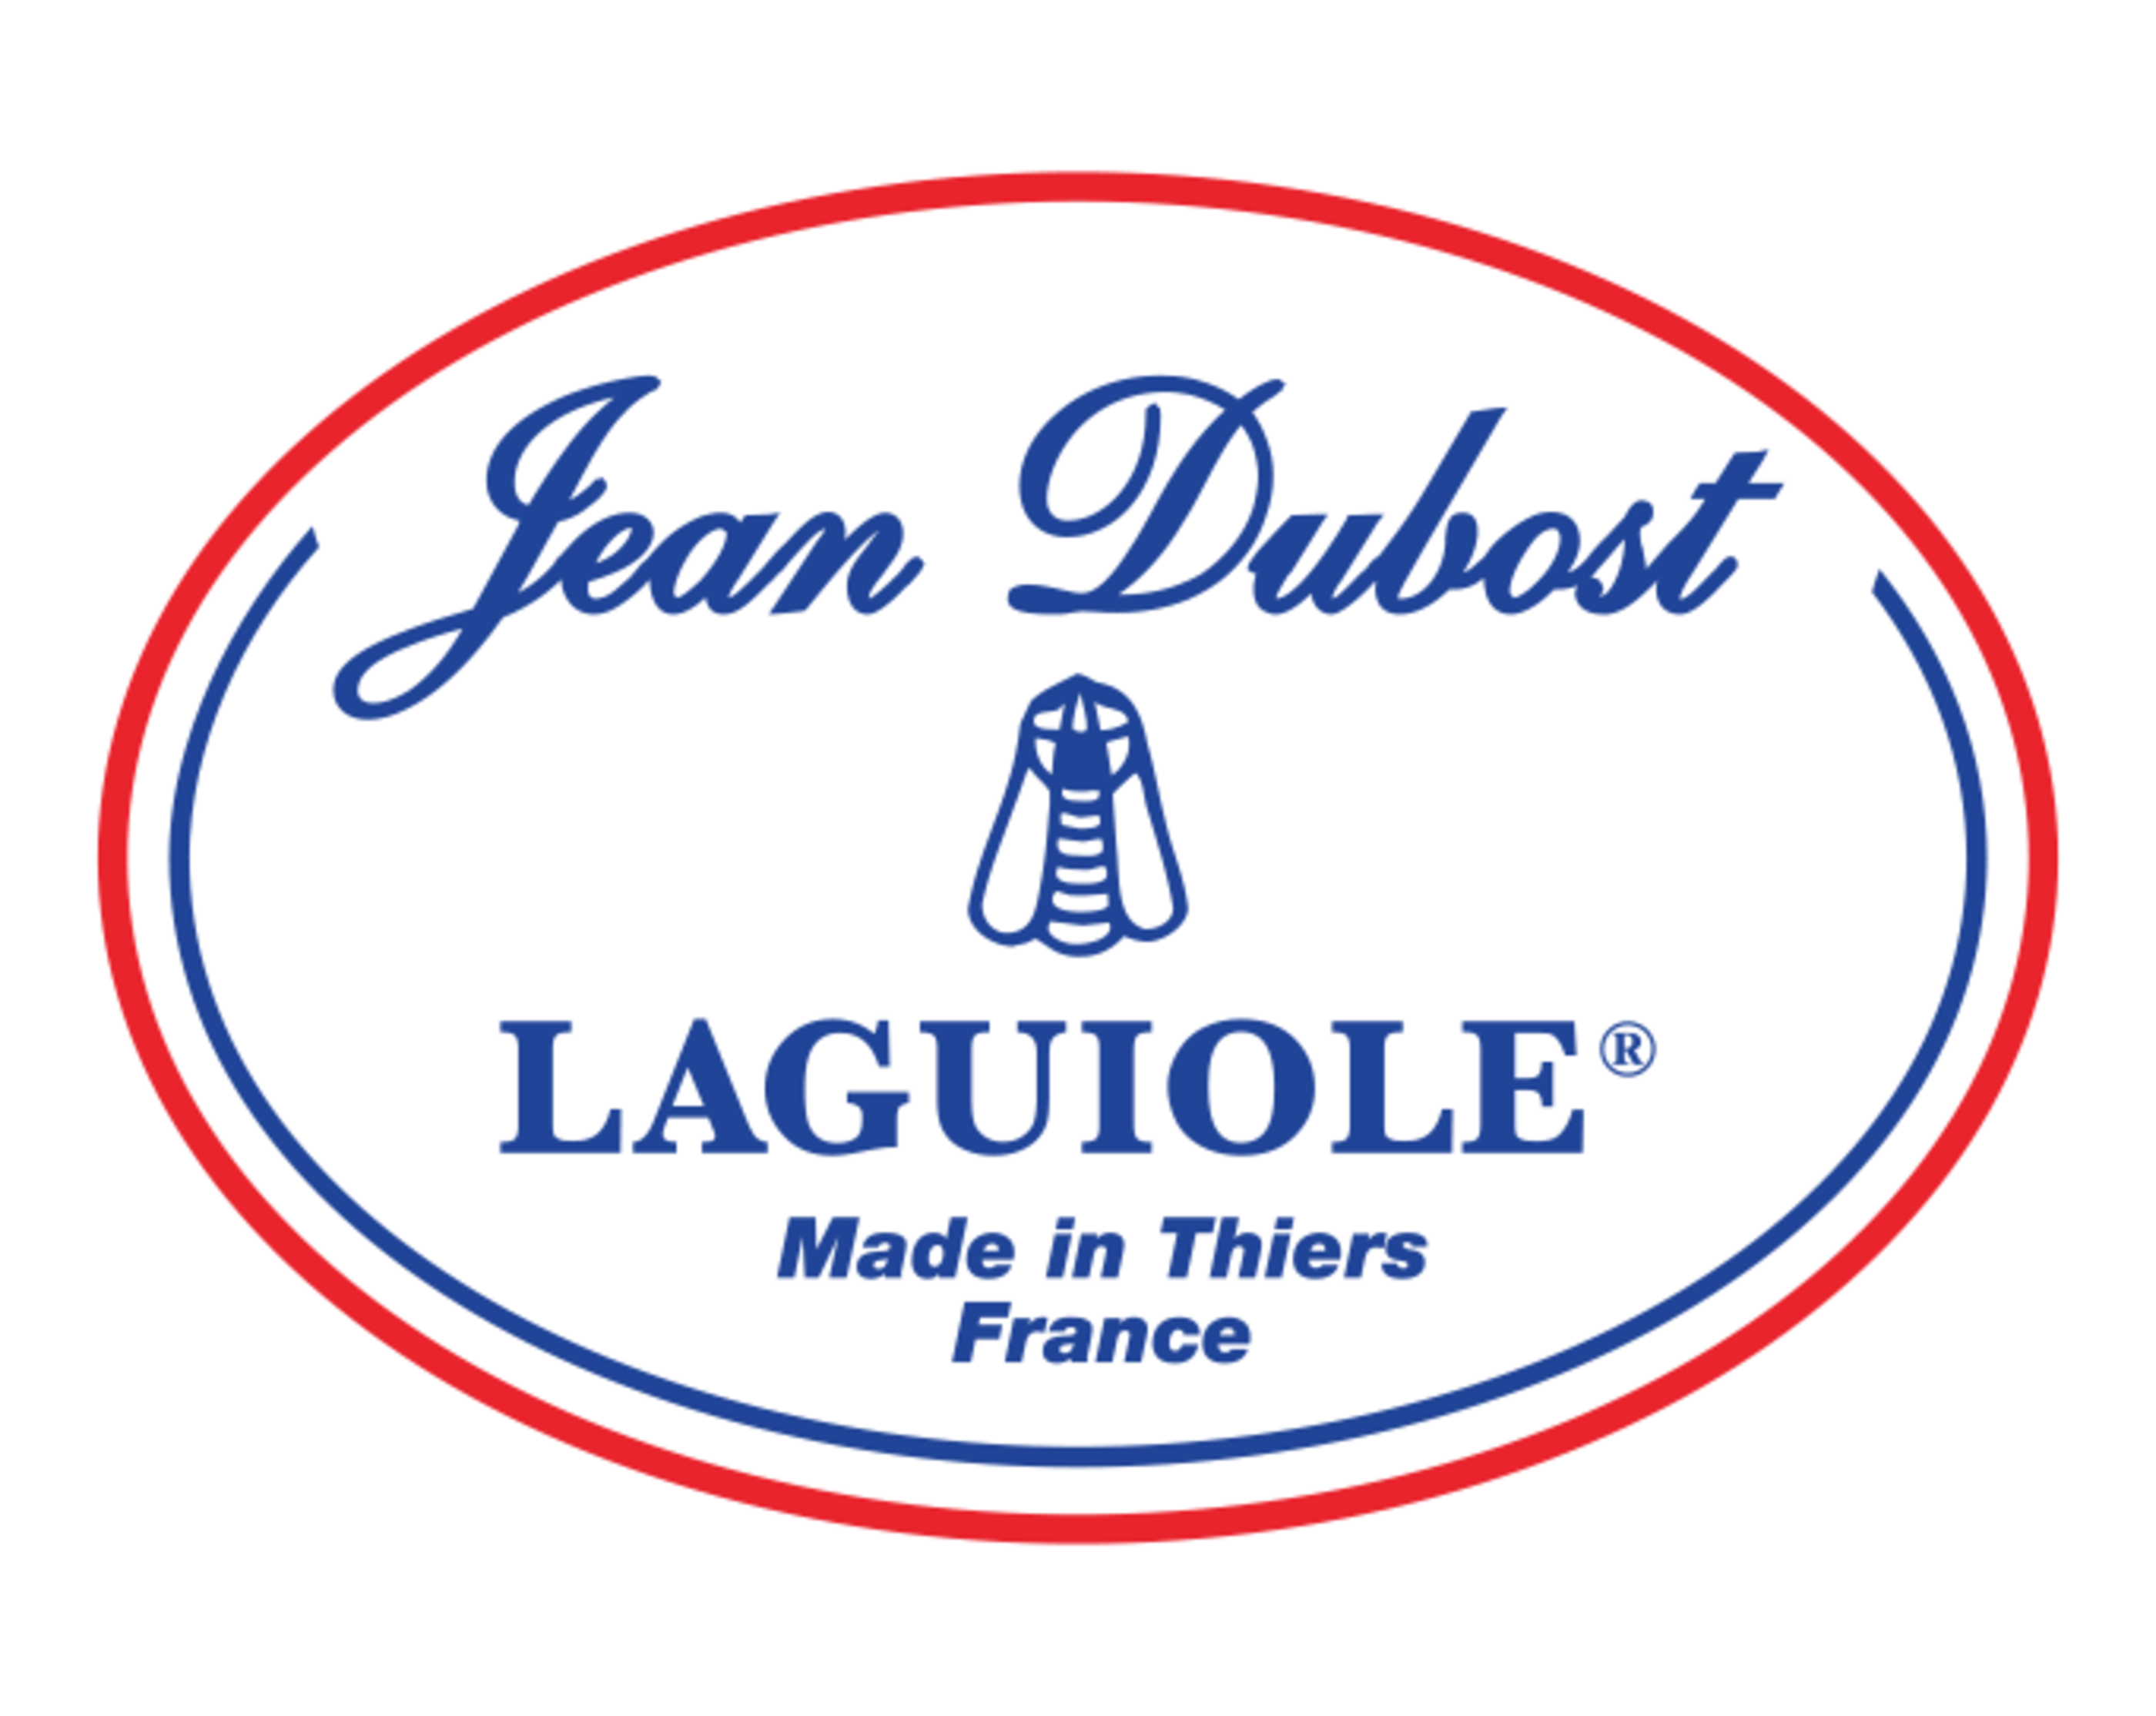 Jean_Dubost_Laguiole_Made_in_Thiers_France